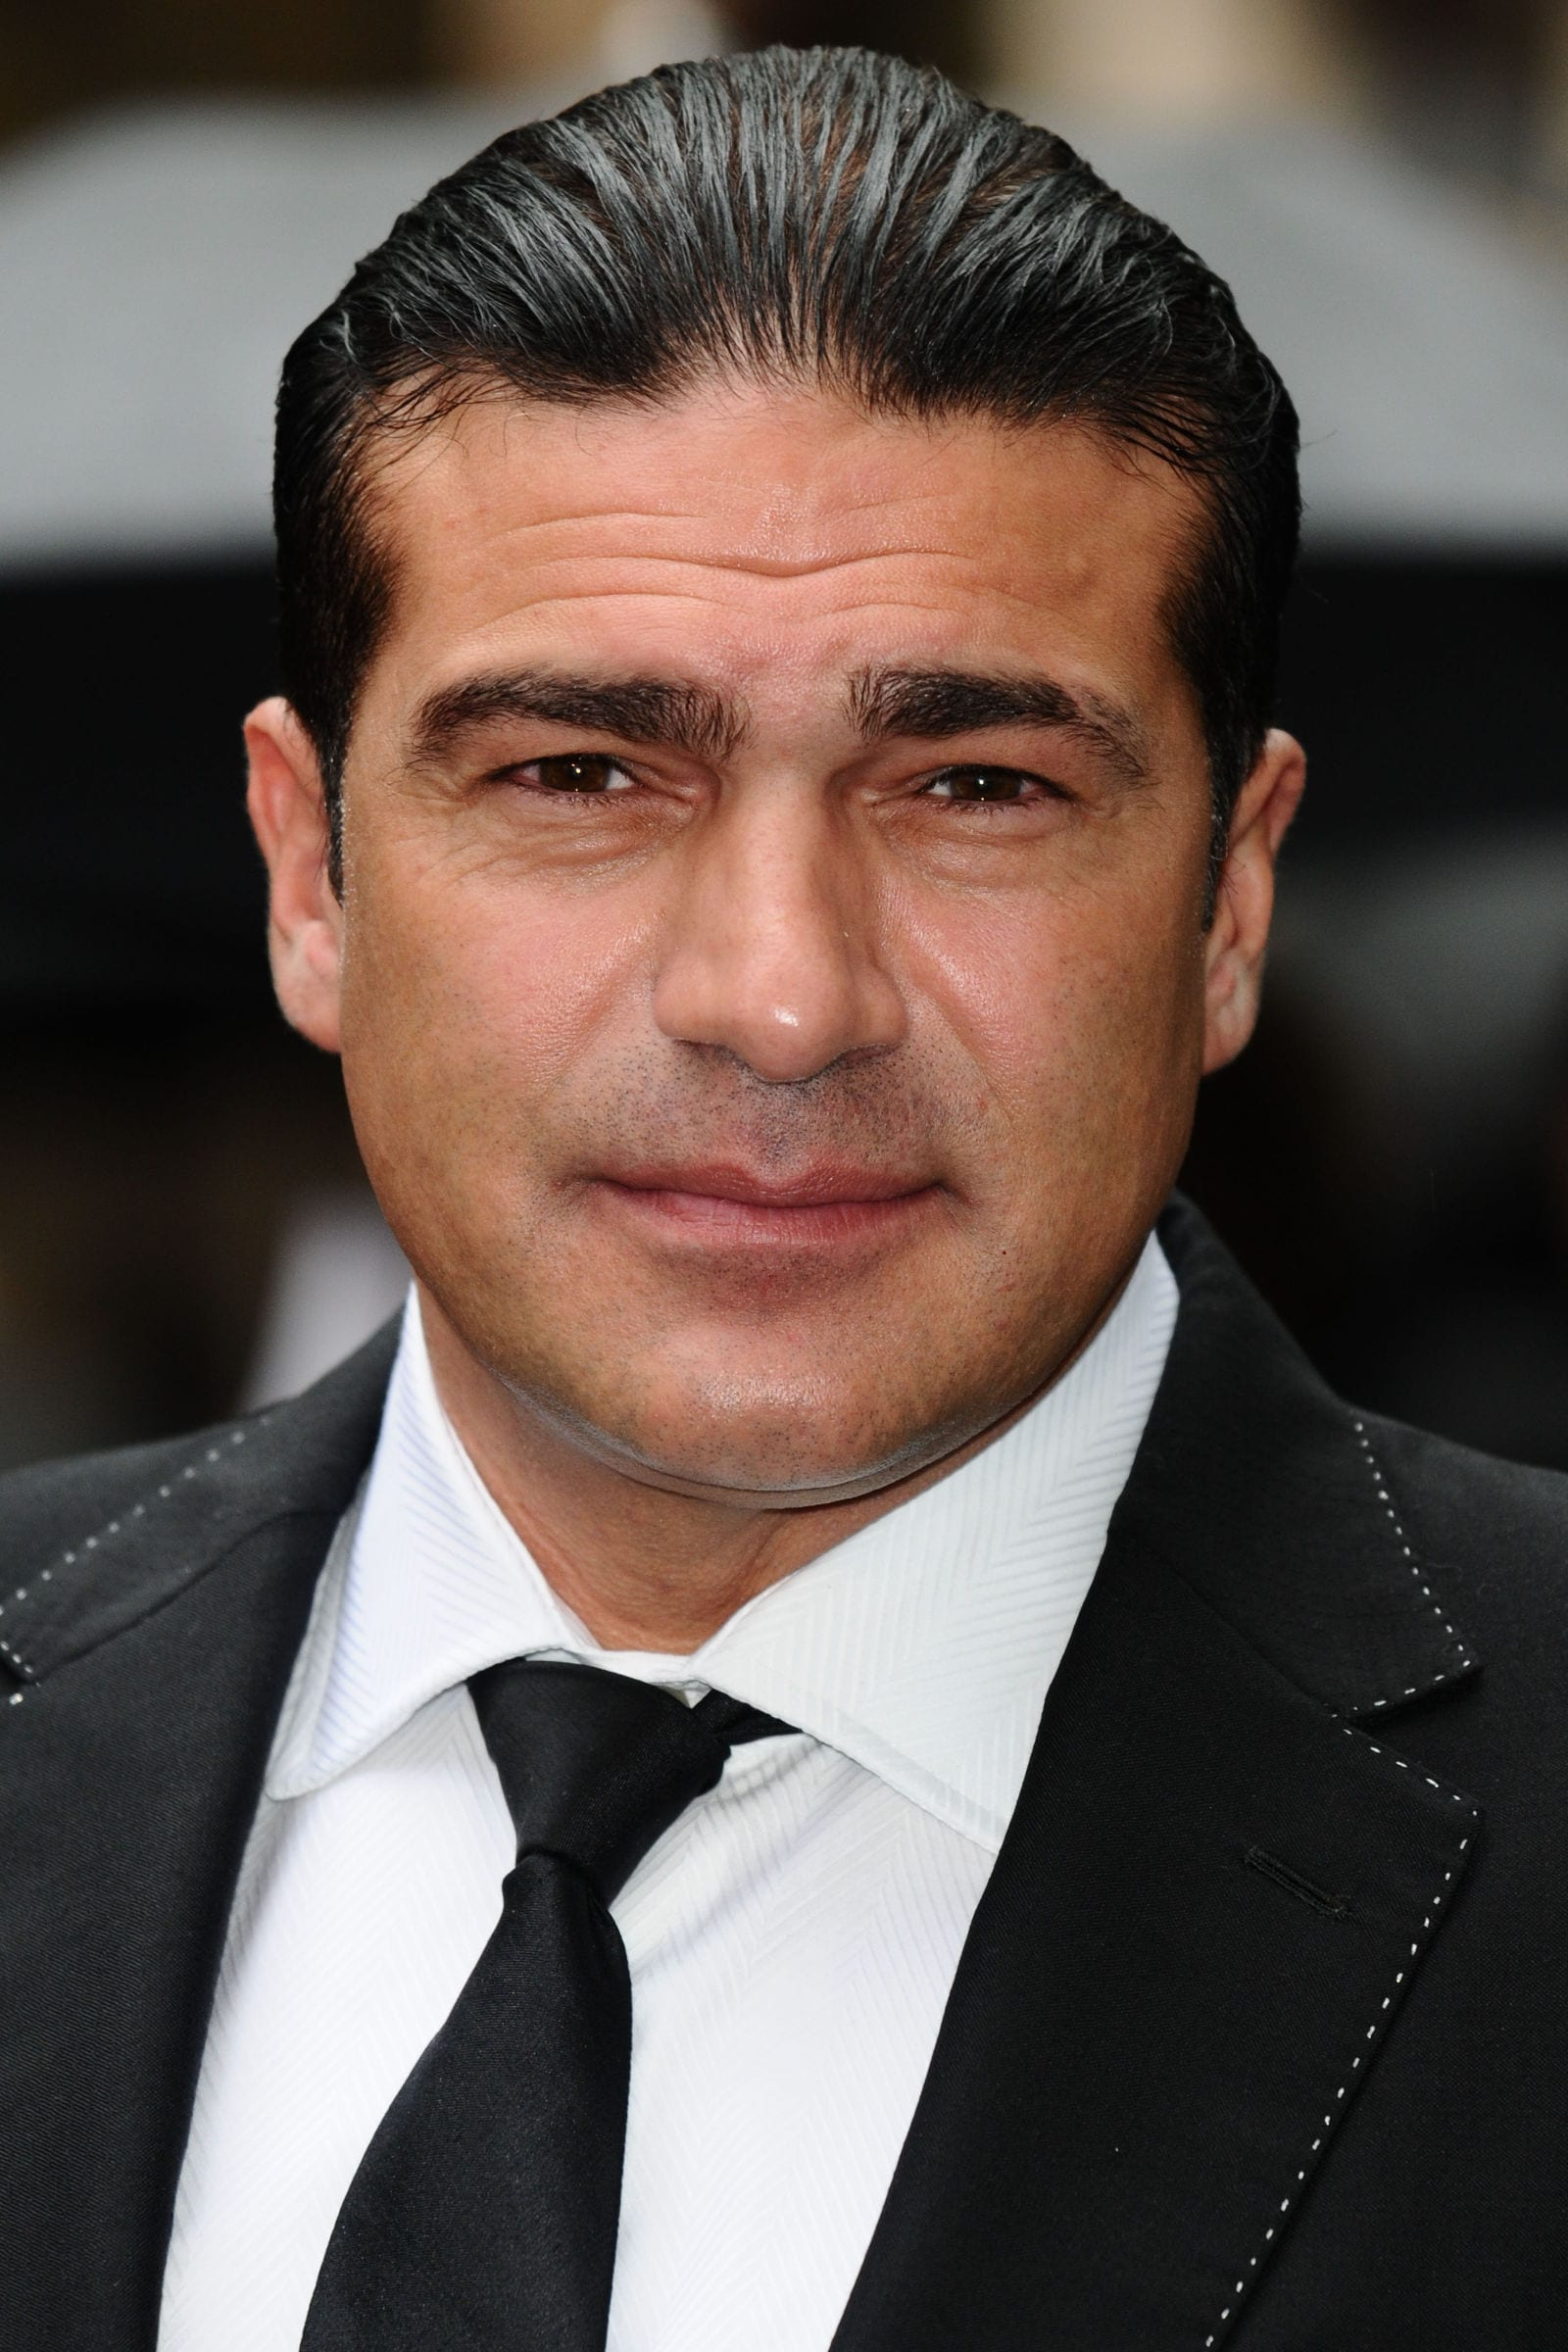 Tammer Hassan slicked back by Featureflash Photo Agency